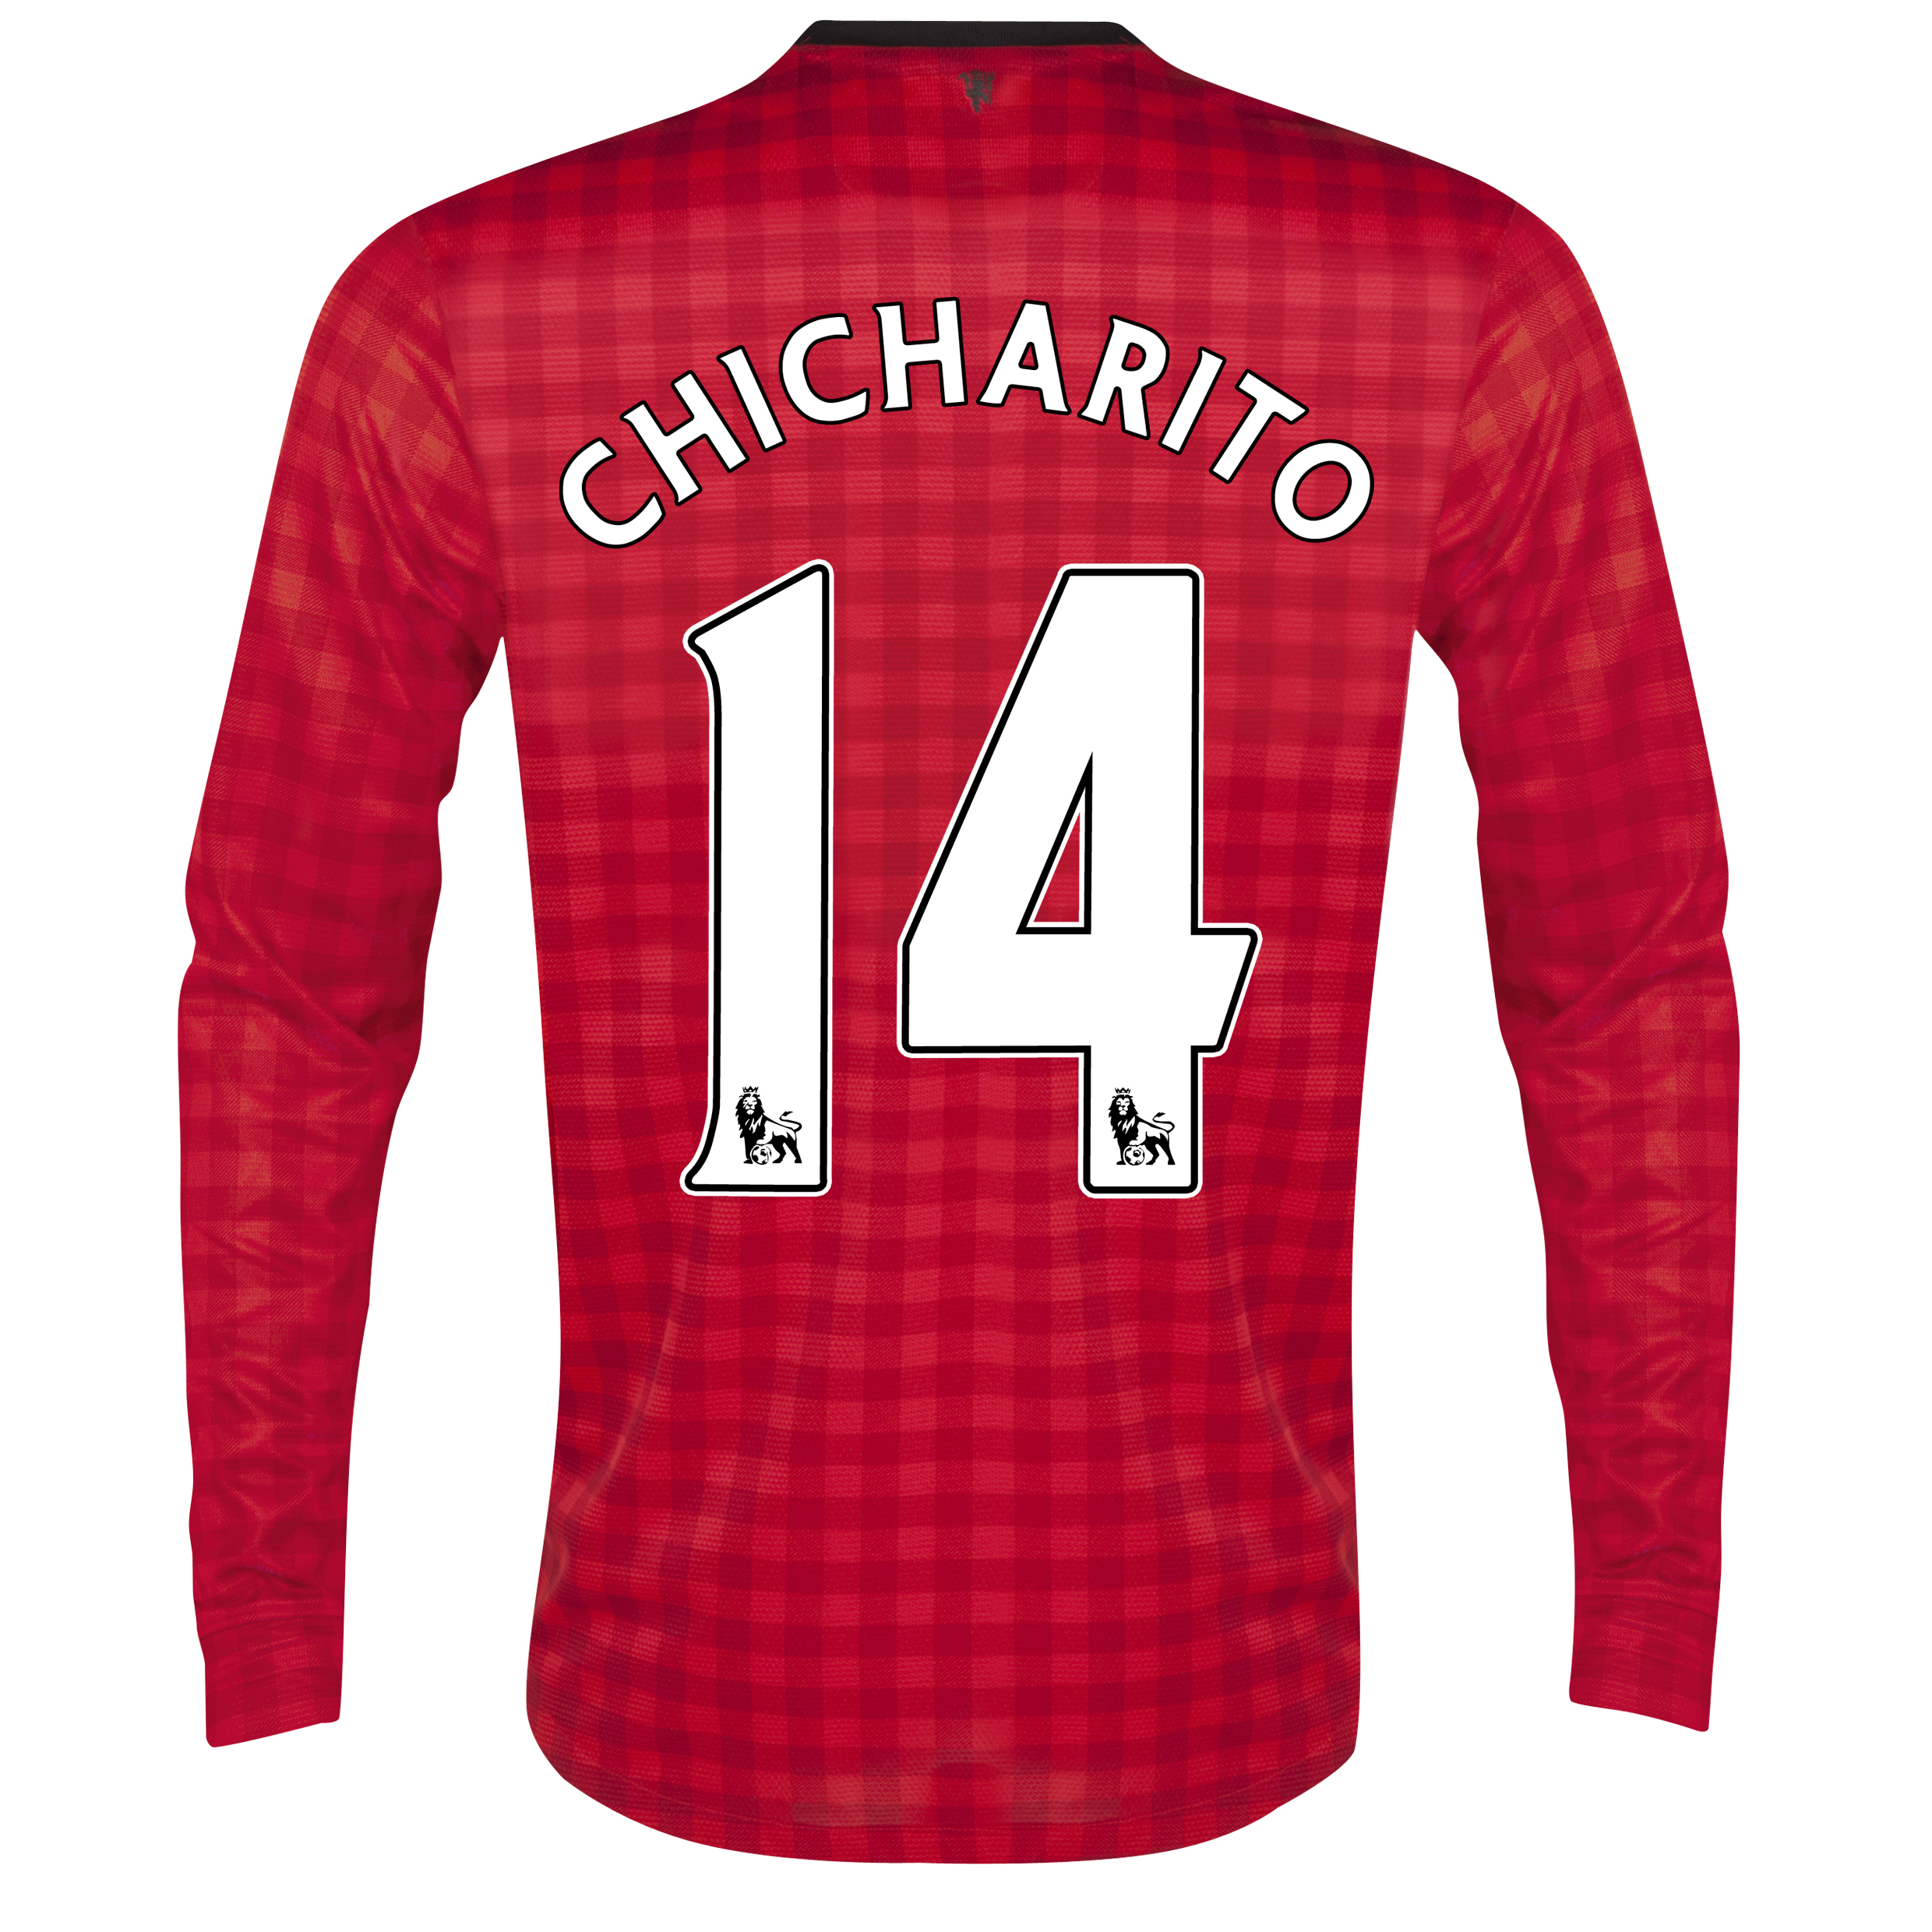 Manchester United Home Shirt 2012/13 - Long Sleeved  - Kids with Chicharito 14 printing